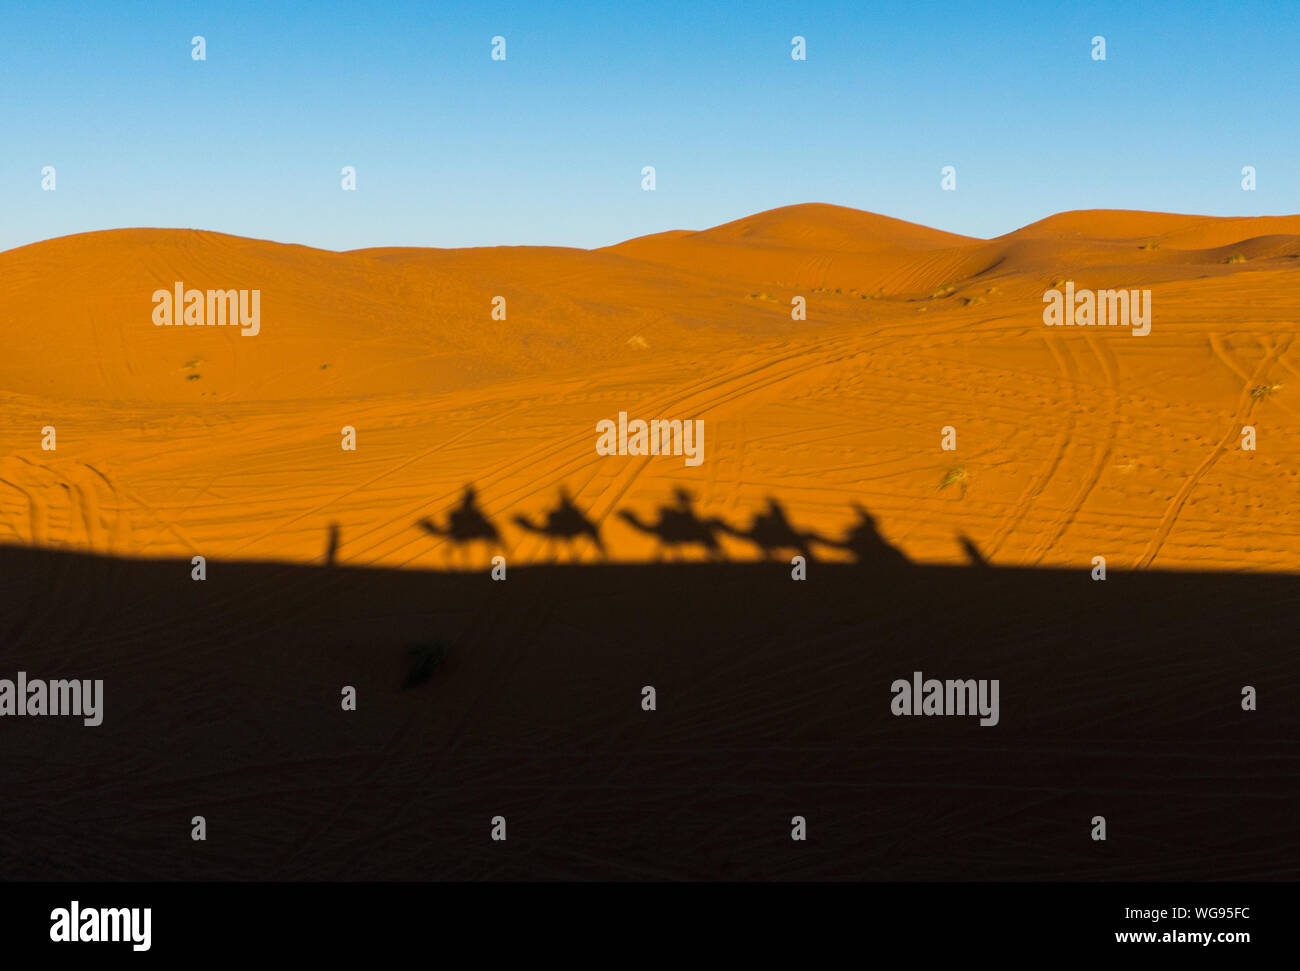 Camels caravan shadows projected over Erg Chebbi desert sand dunes at Morocco Stock Photo